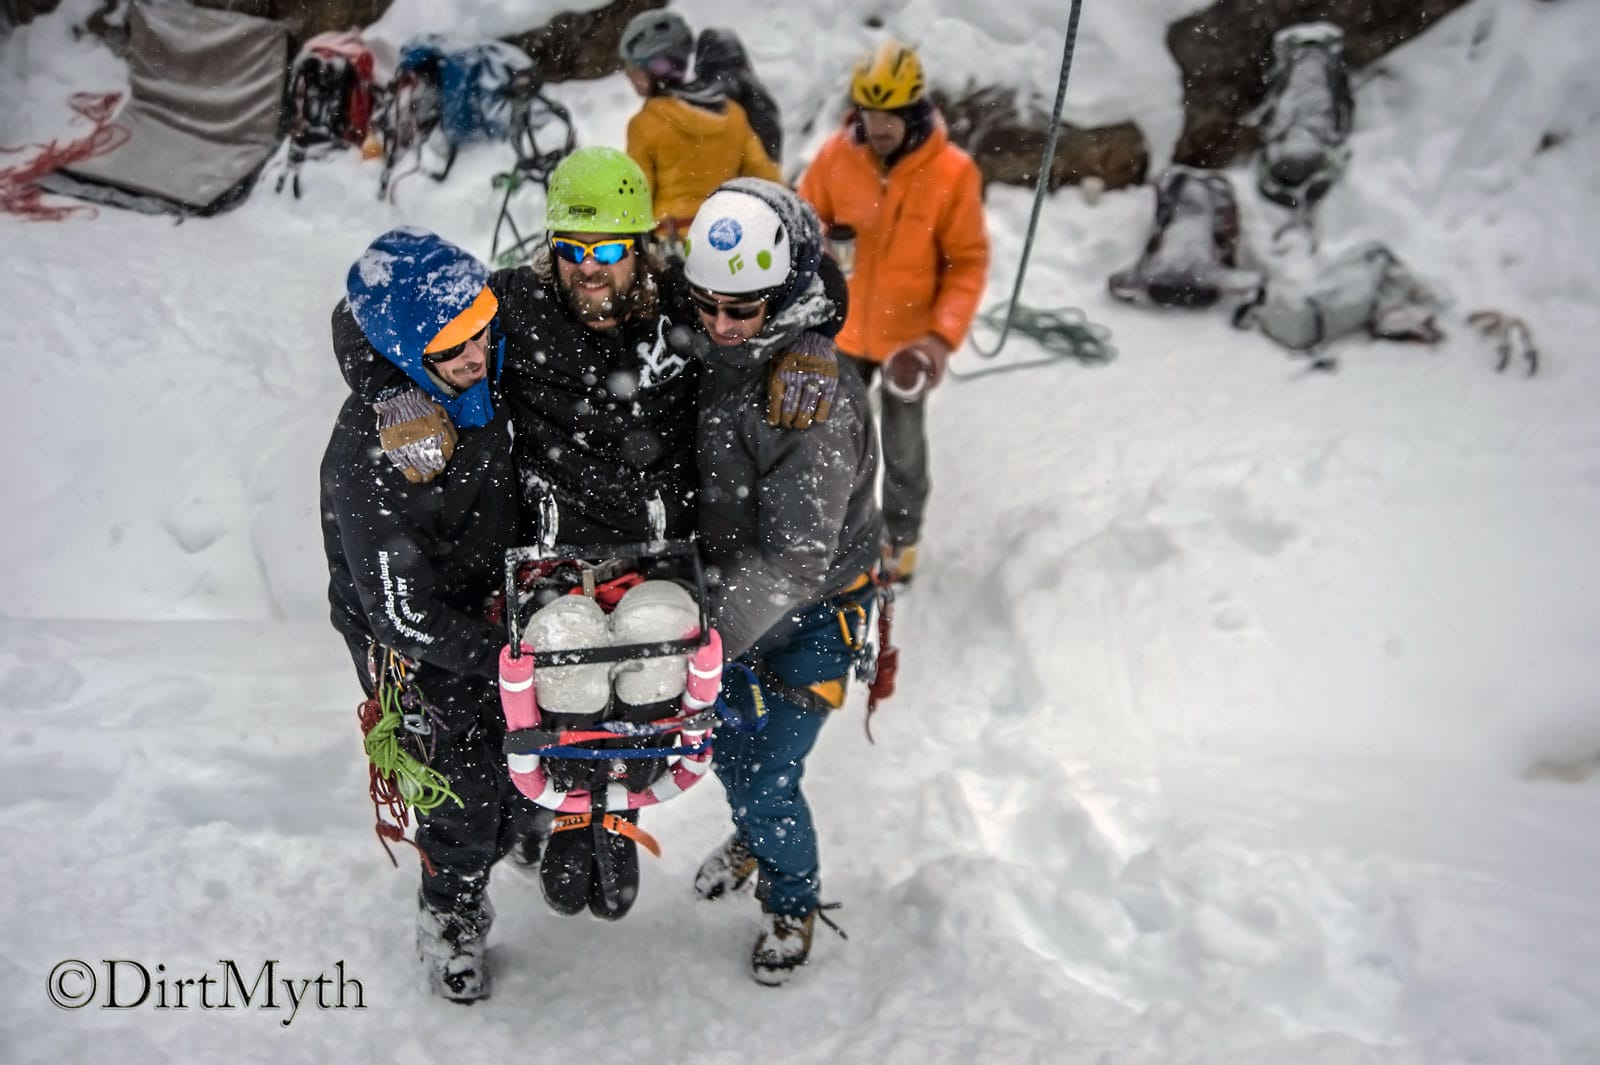 Two men carry another man up a snowy hill.